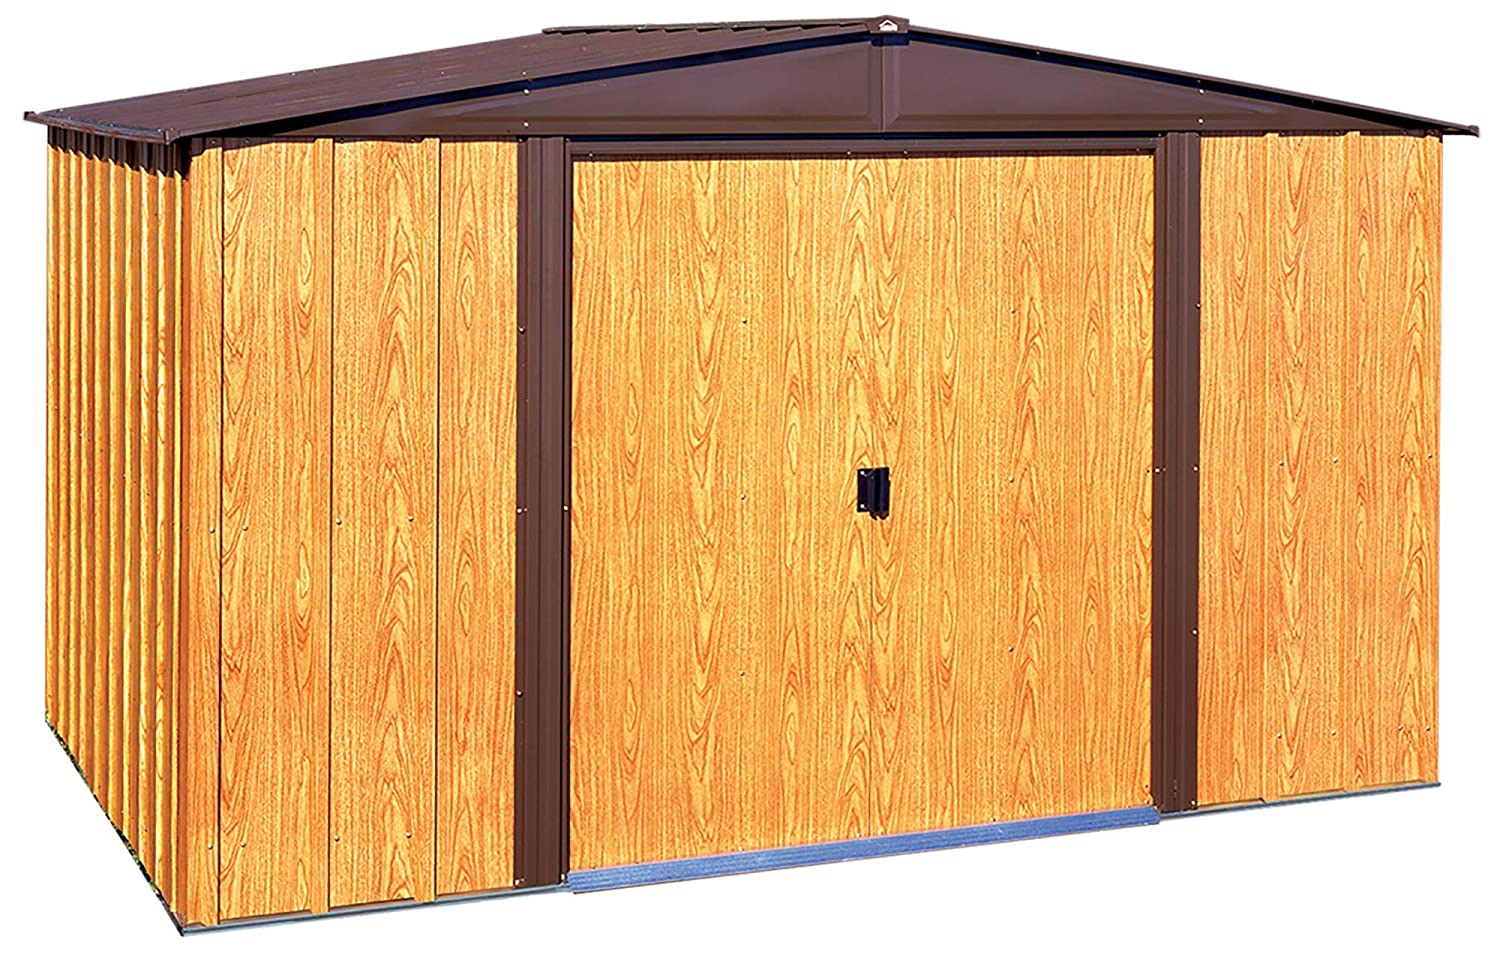 Arrow WL65 Woodlake 6-Feet by 5-Feet Steel Storage Shed Arrow Sheds Drop Ship